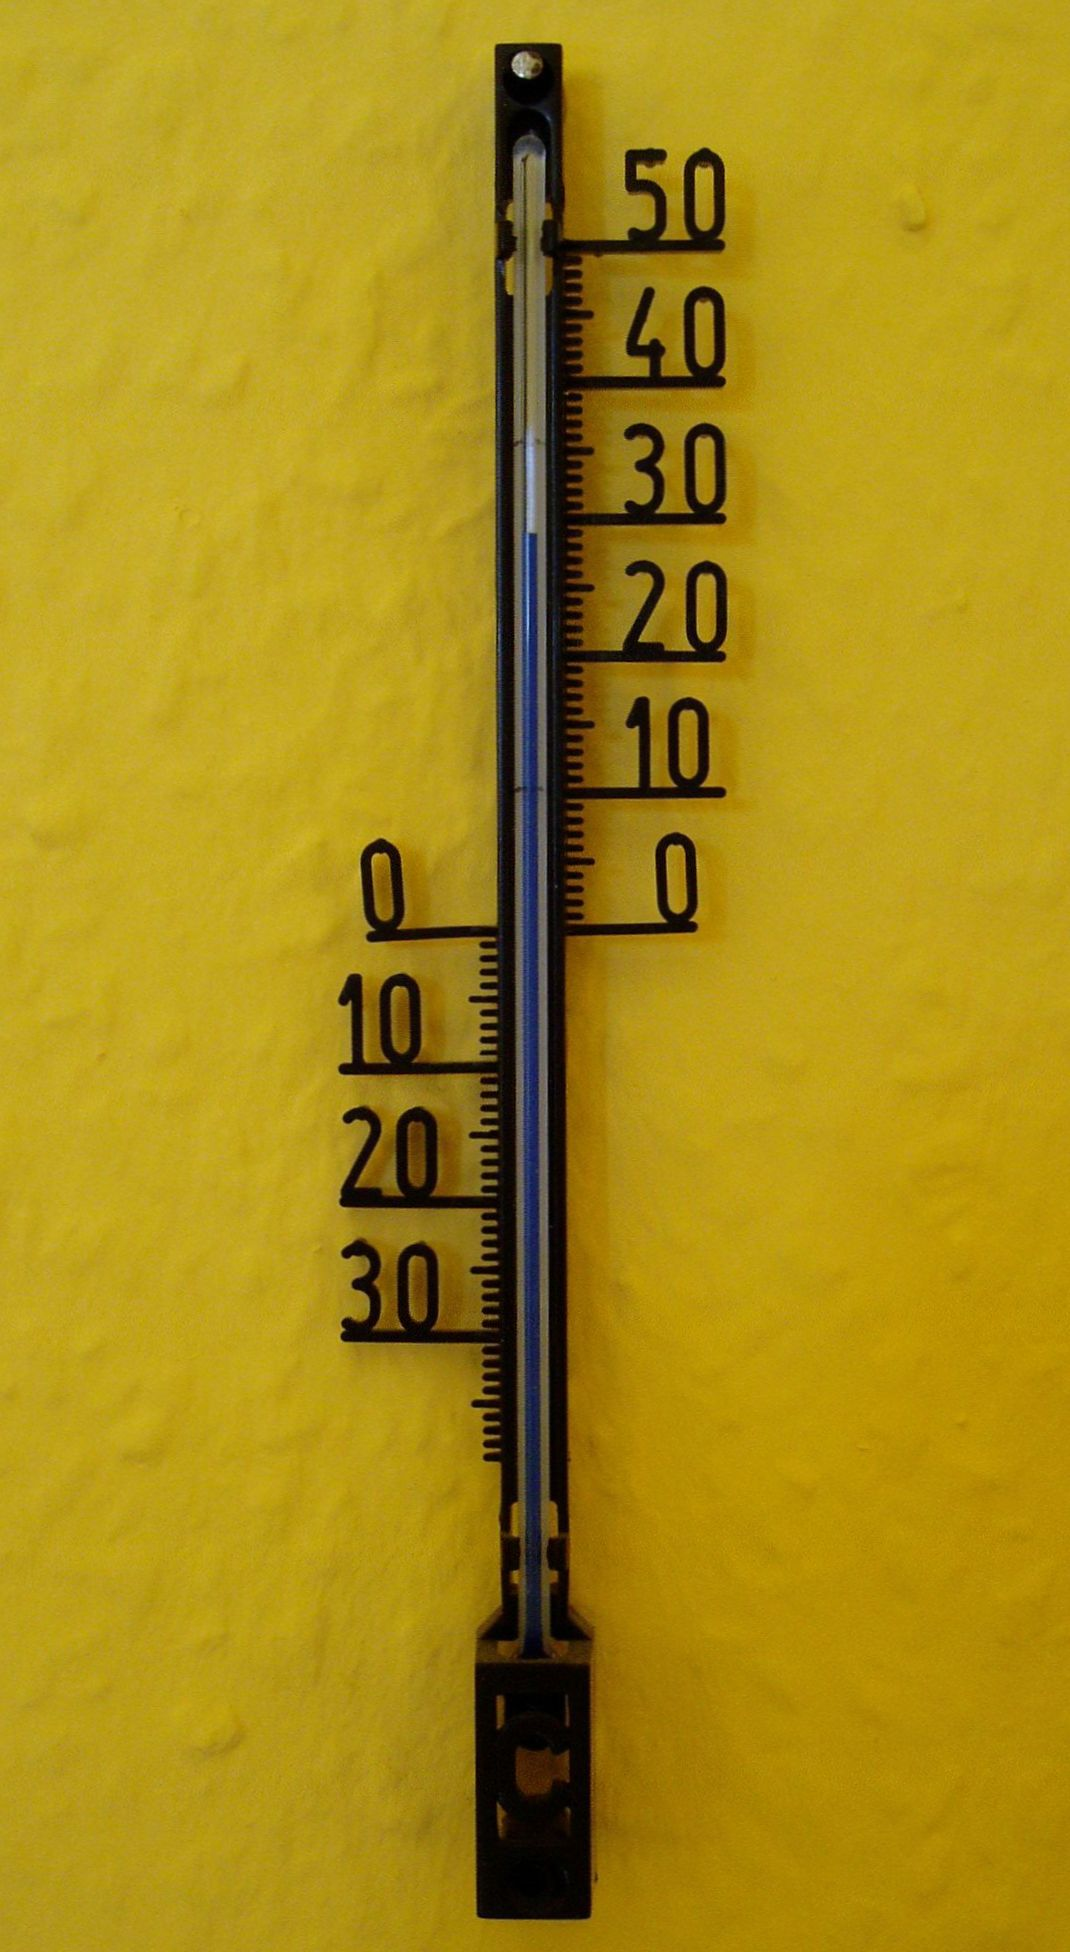 A wall thermometer